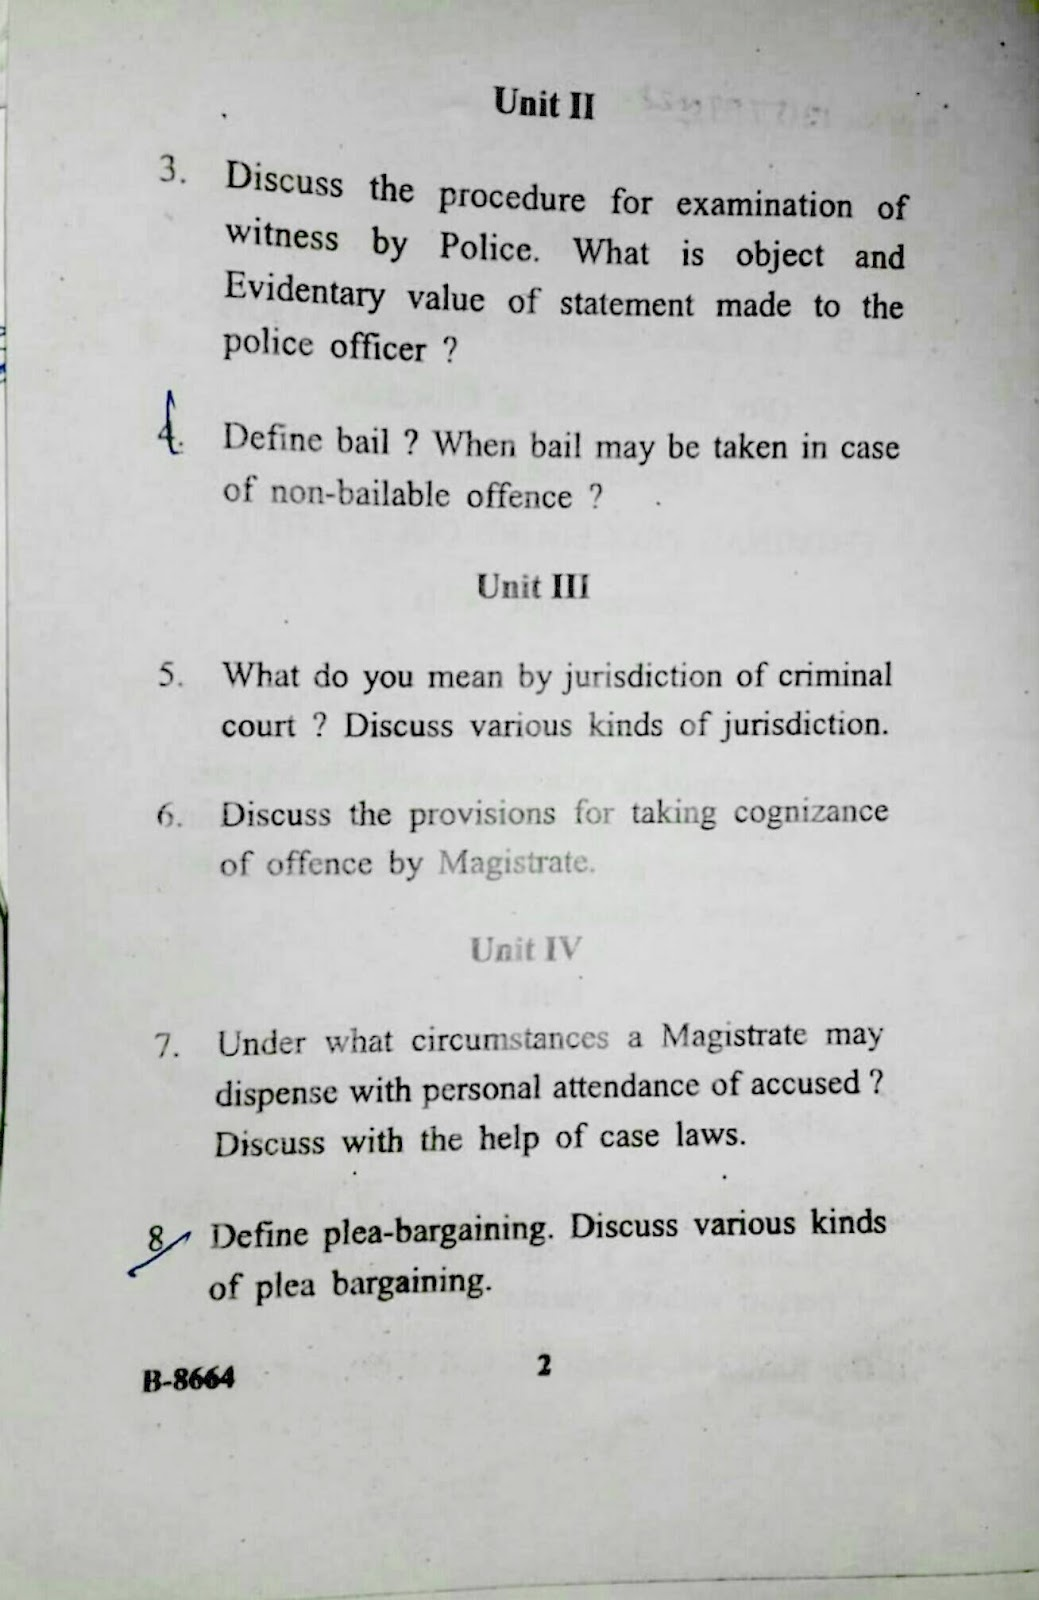 Previous/Last years question paper of Criminal Procedure